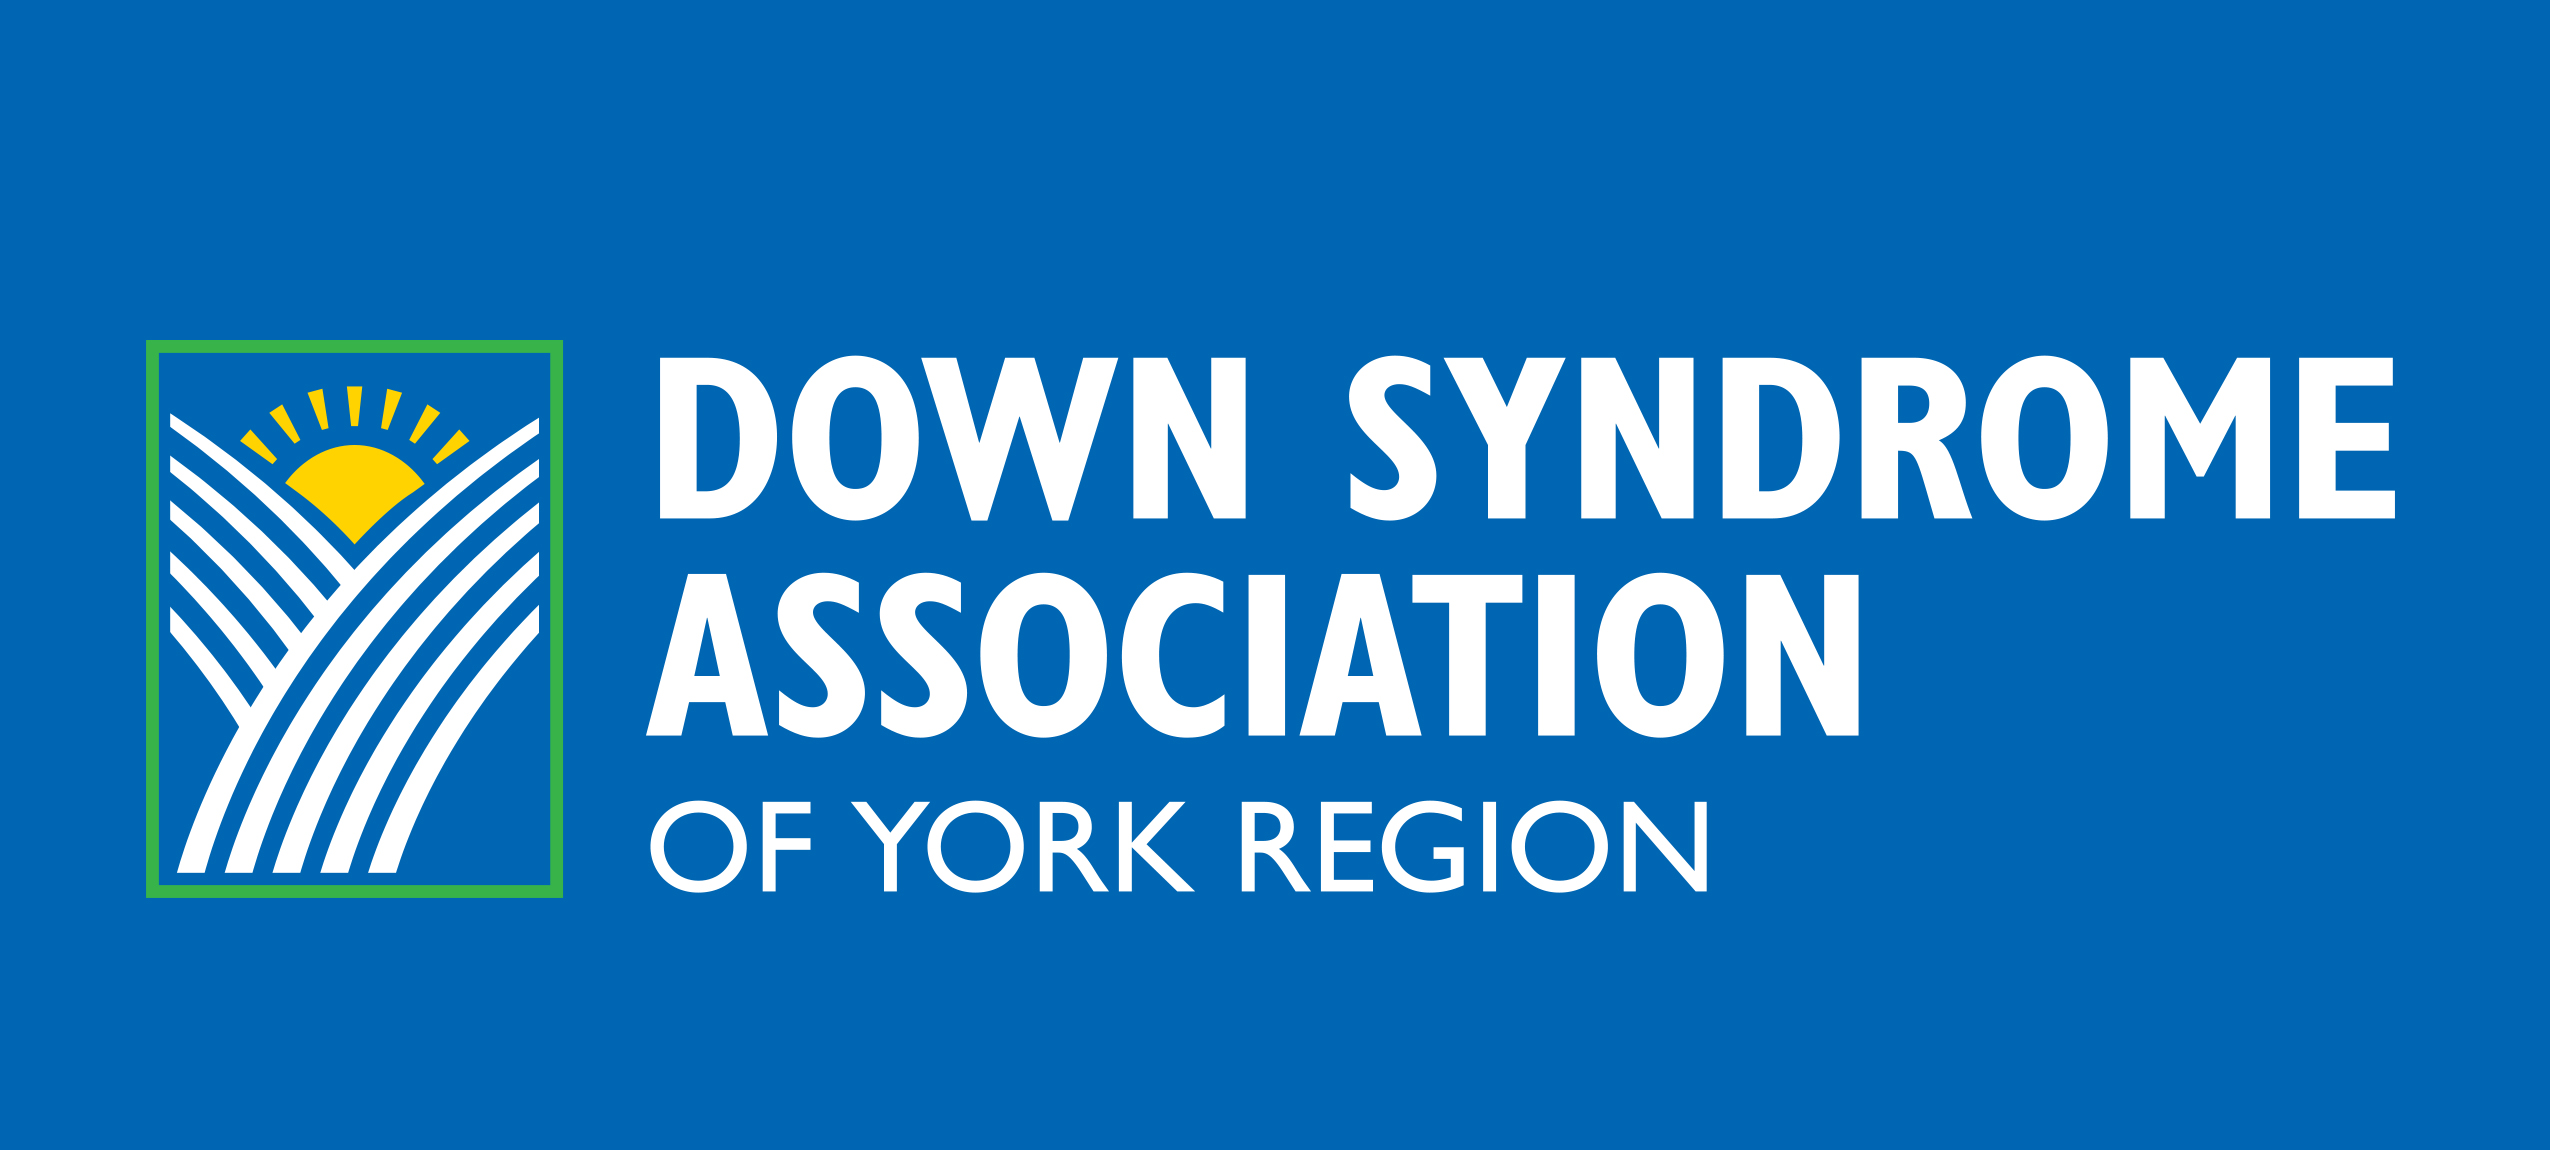 Down Syndrome Associaion of York Region